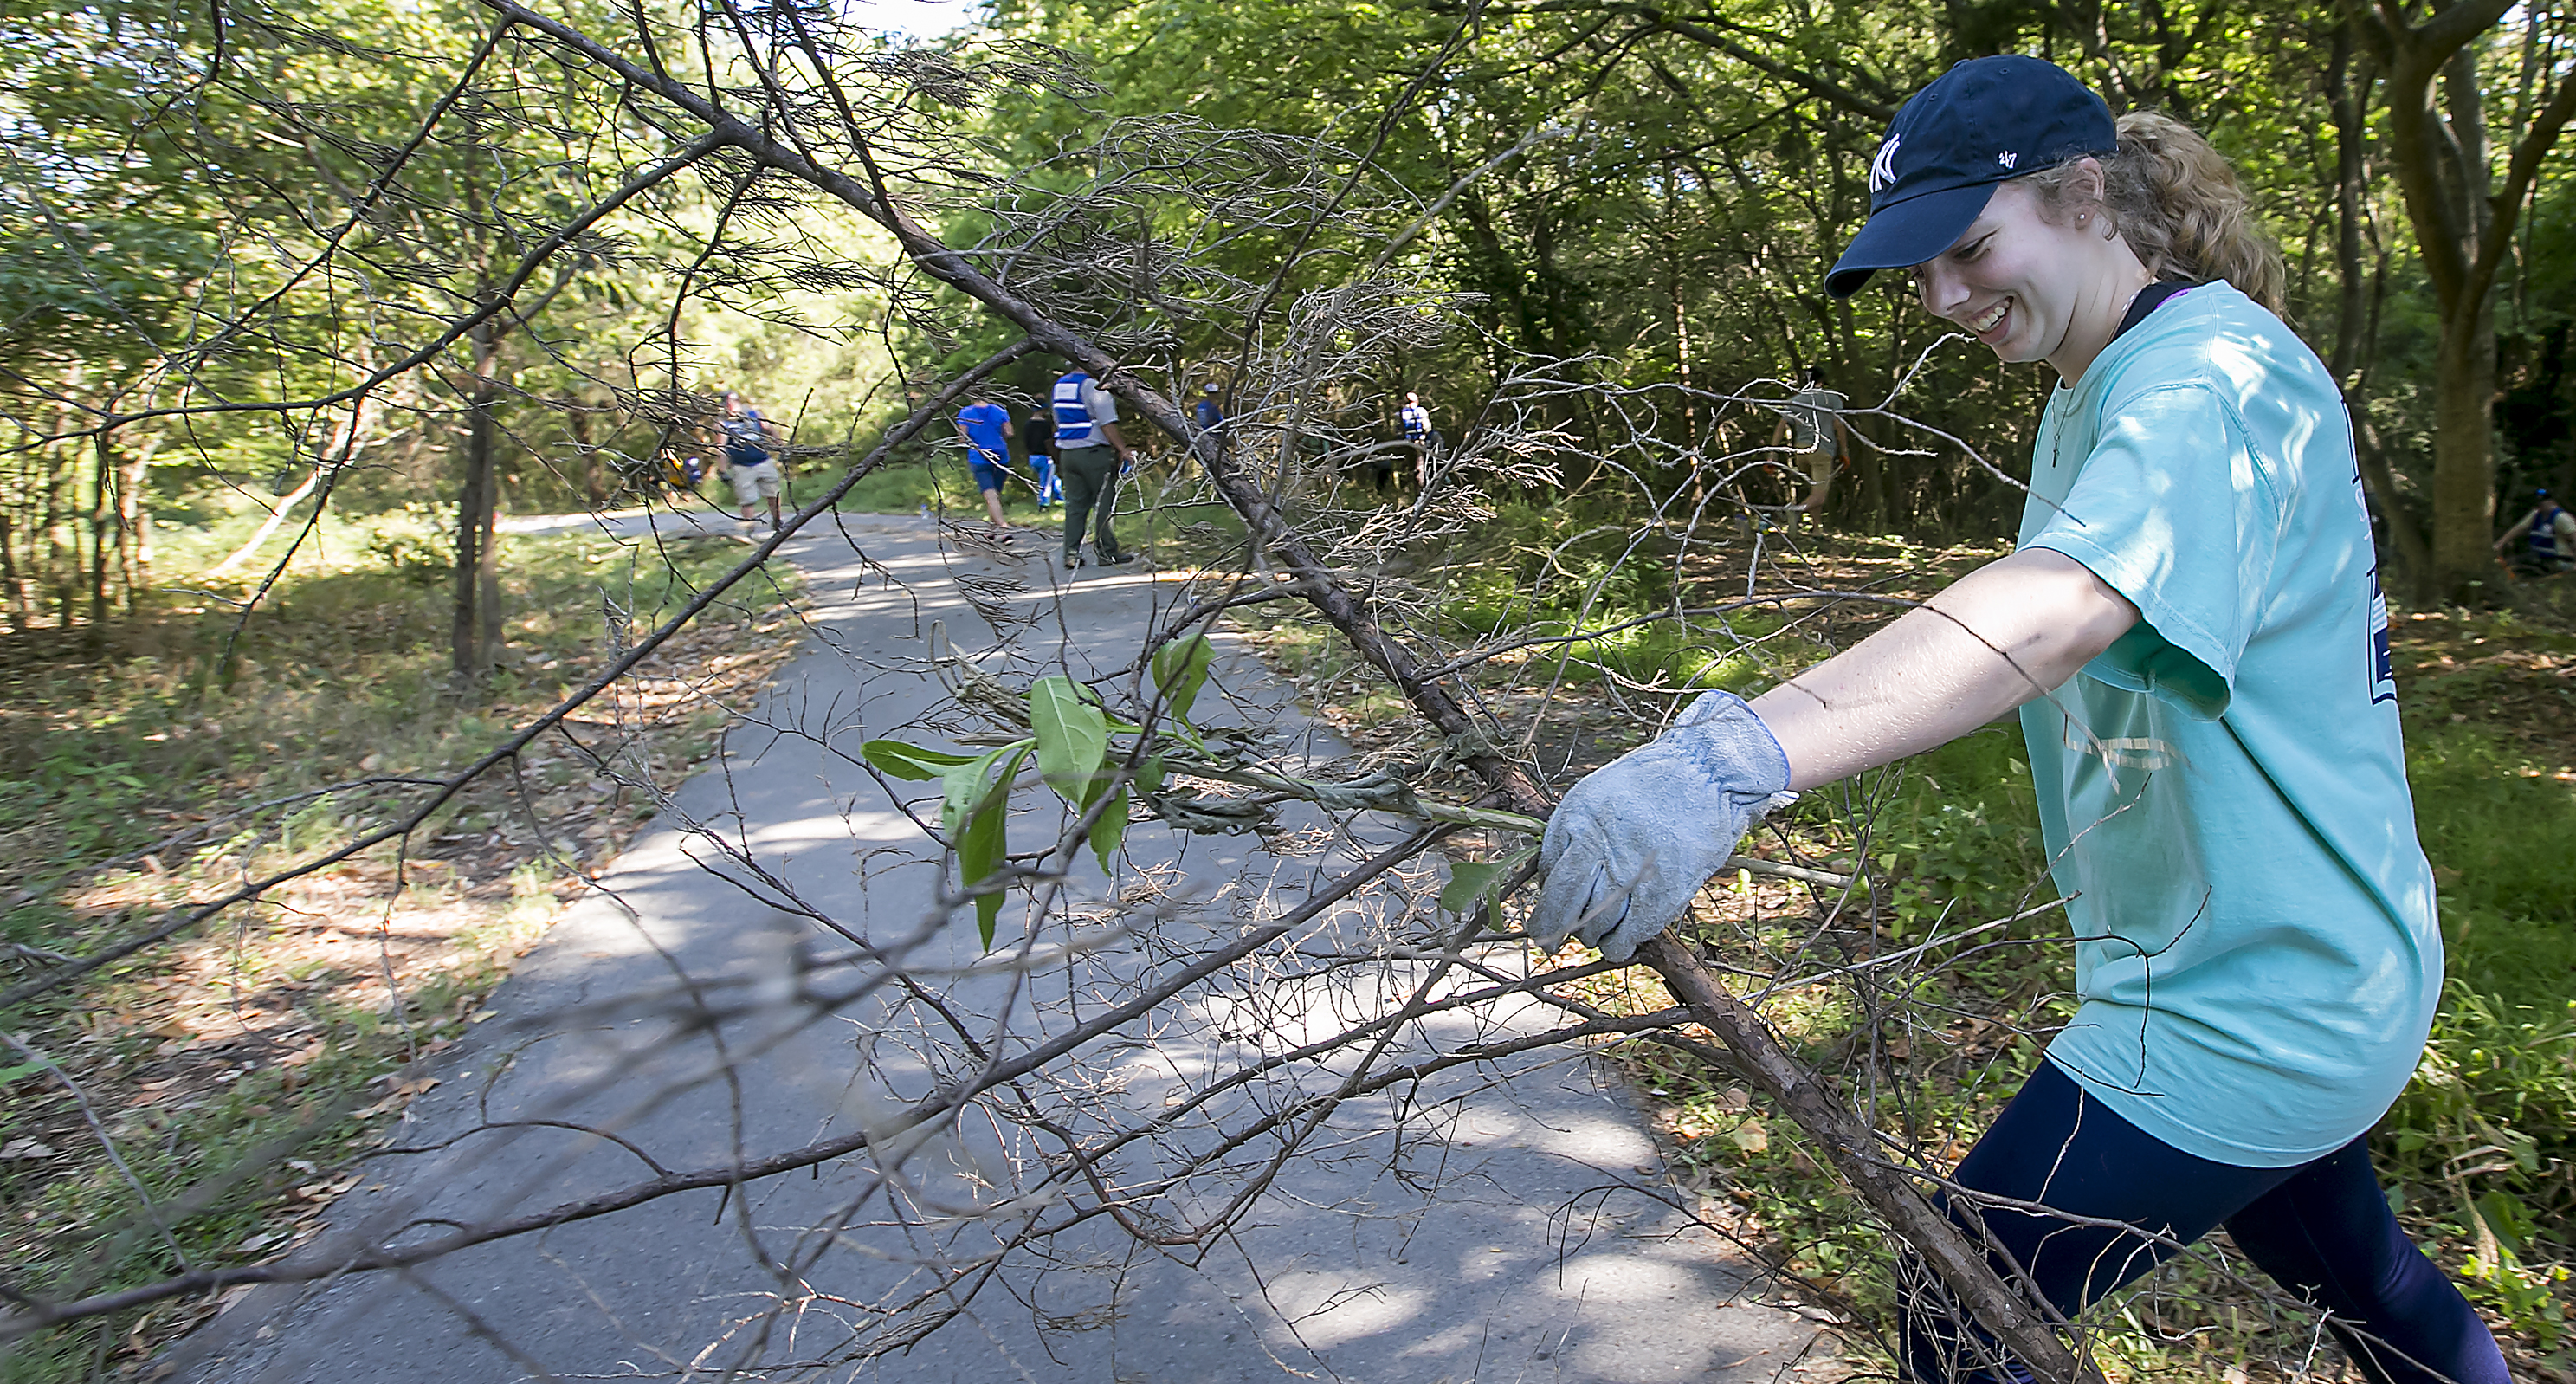 Parks Cleaned by local Volunteers for National Land Day